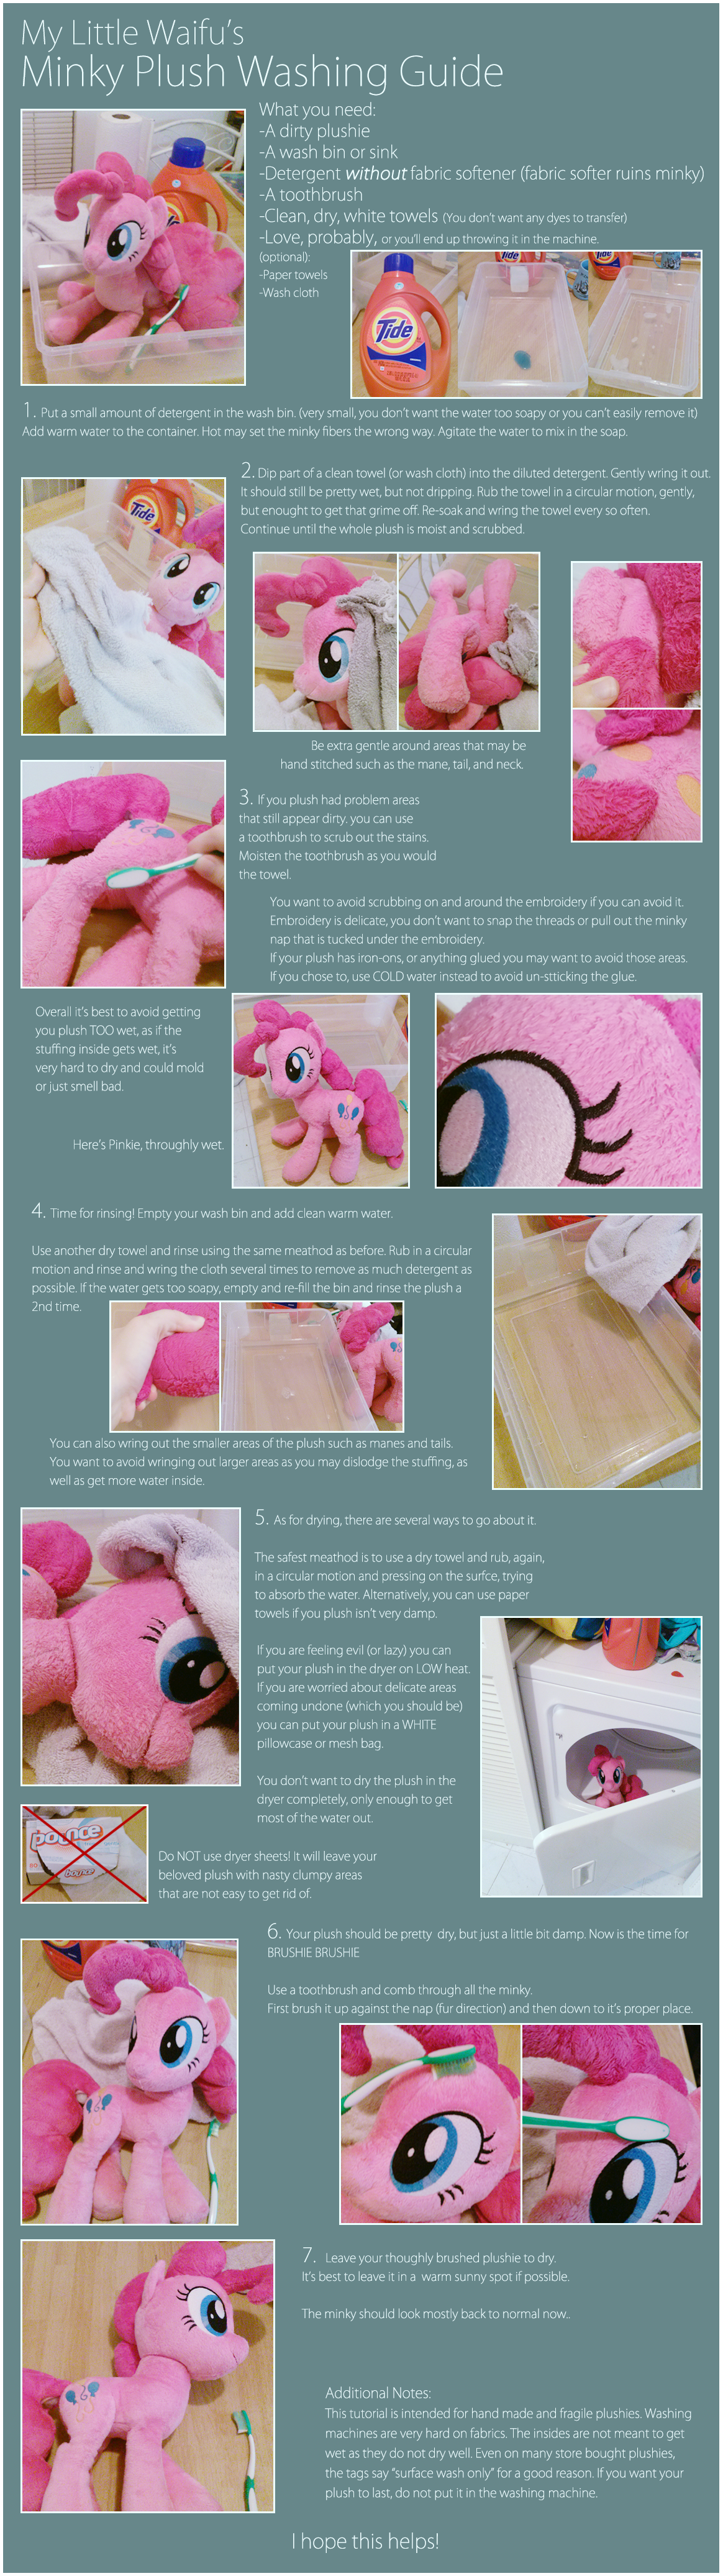 Minky Plush Washing Guide by ButtercupBabyPPG